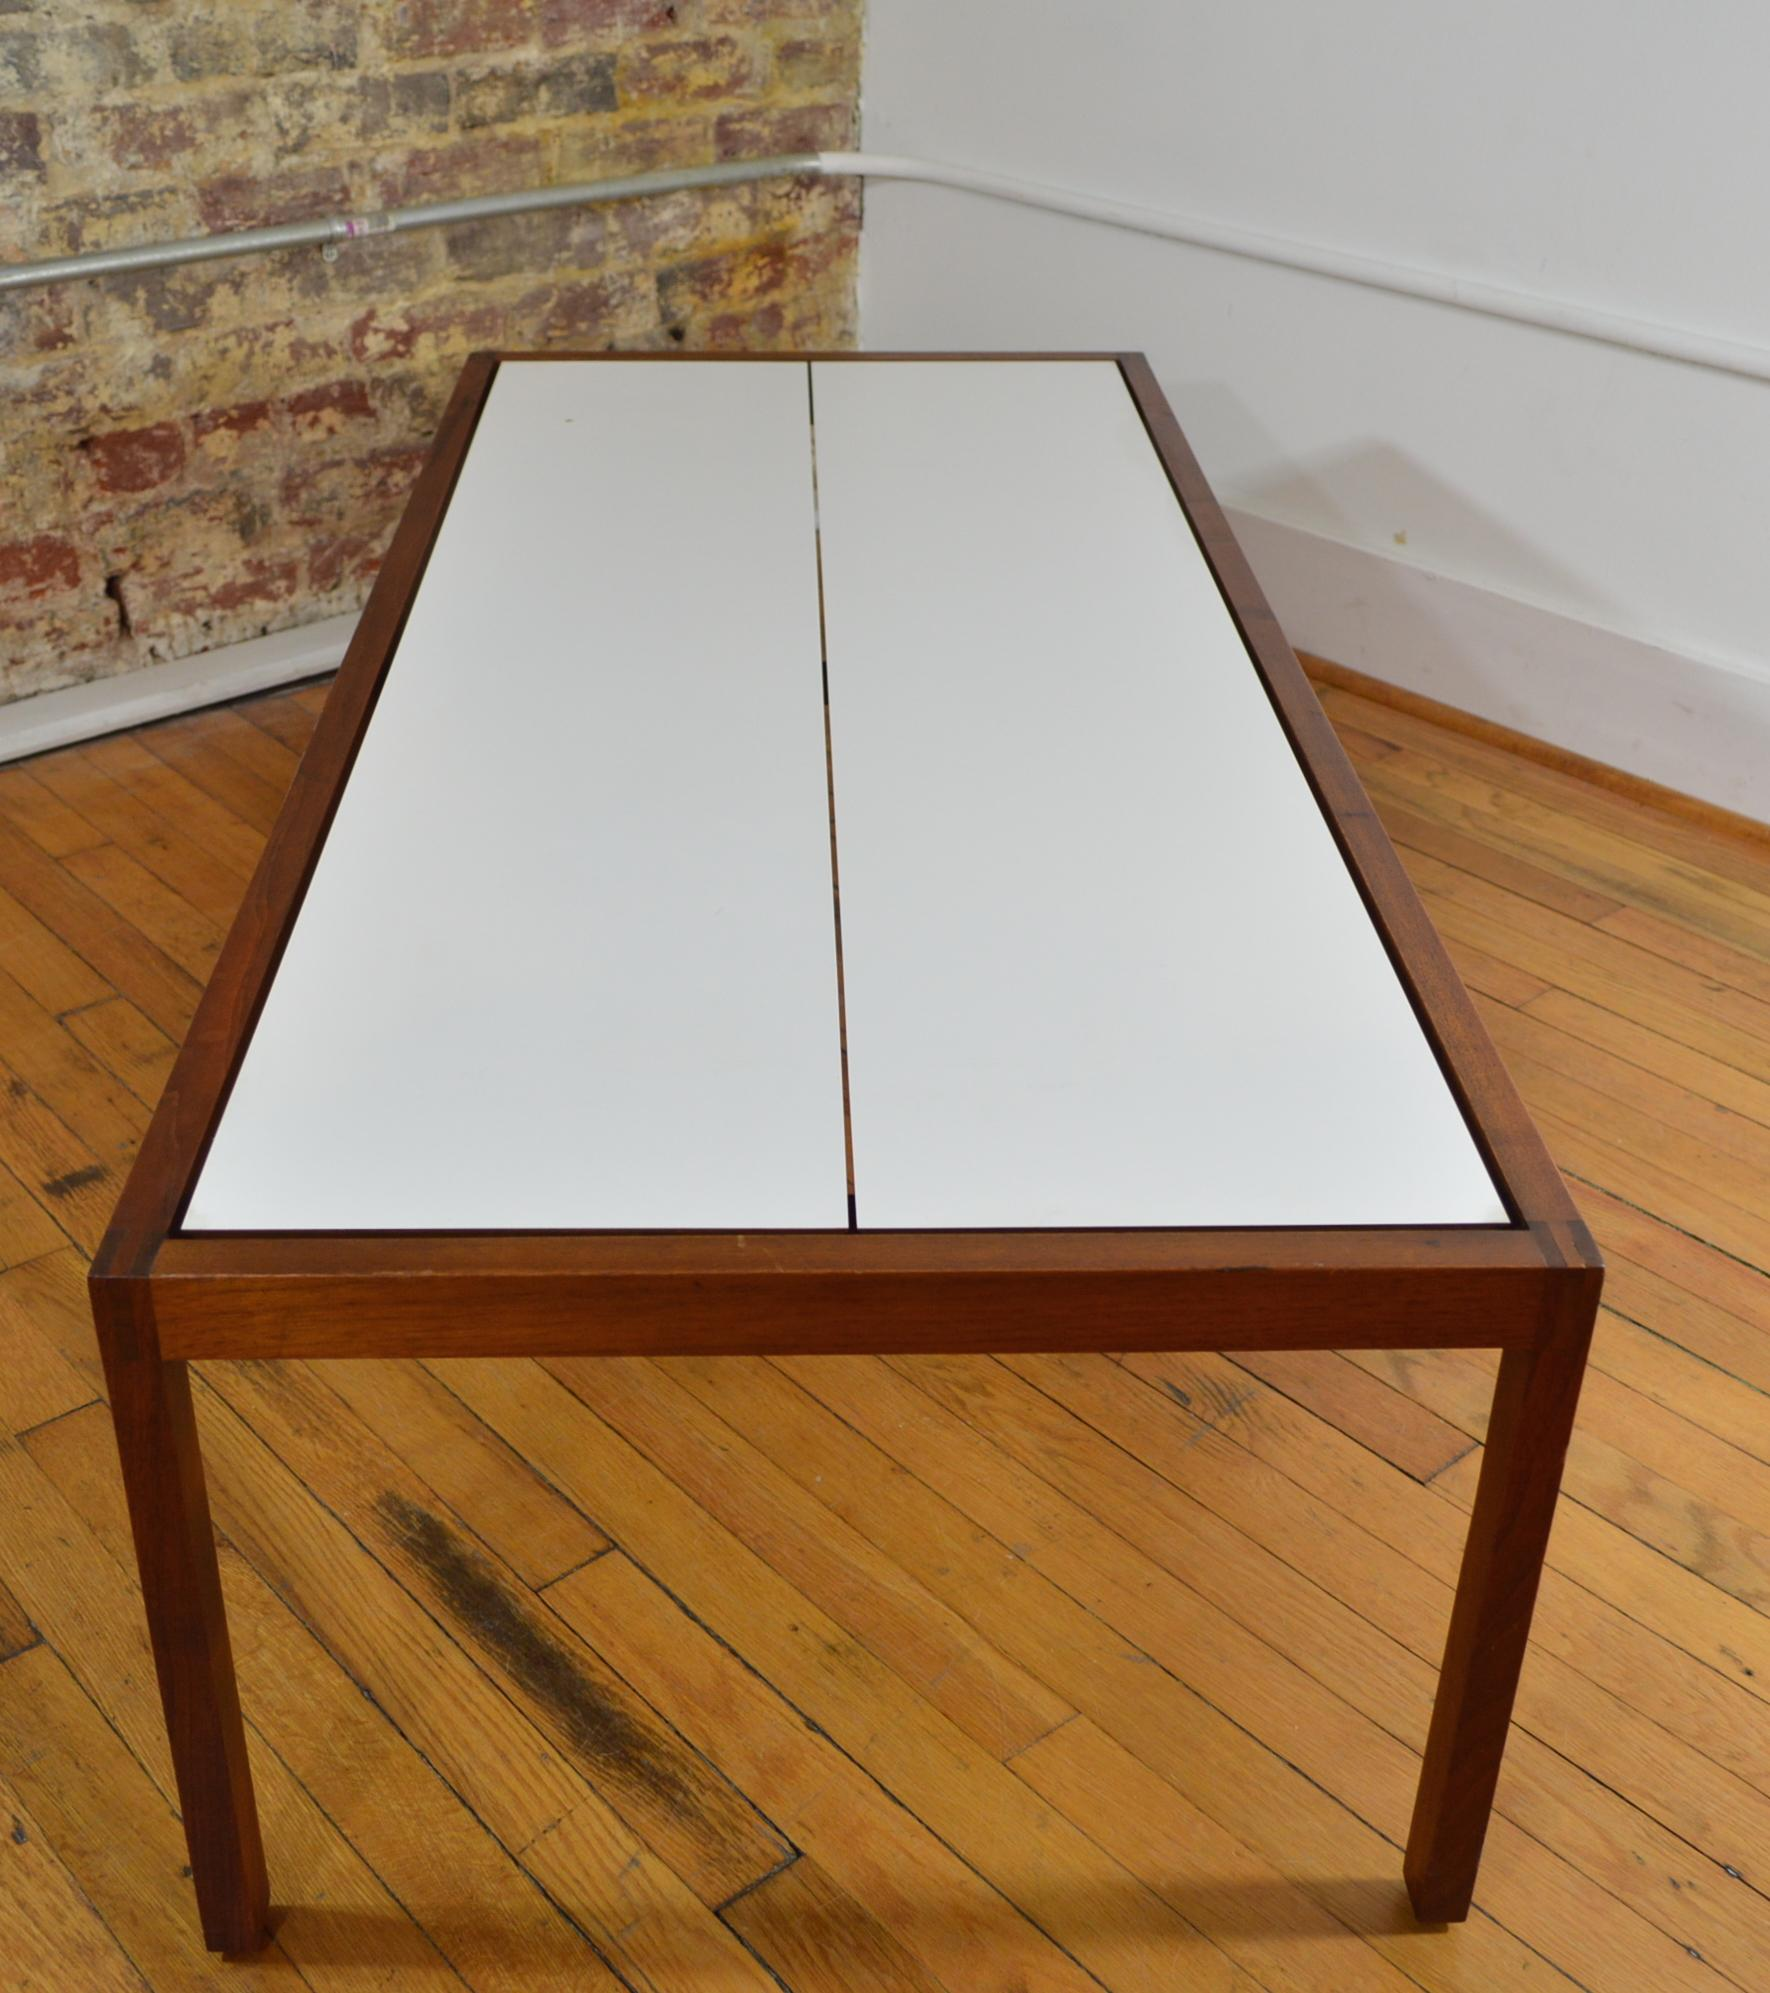 Great Knoll Walnut And Laminate White Coffee Table   Image 4 Of 7